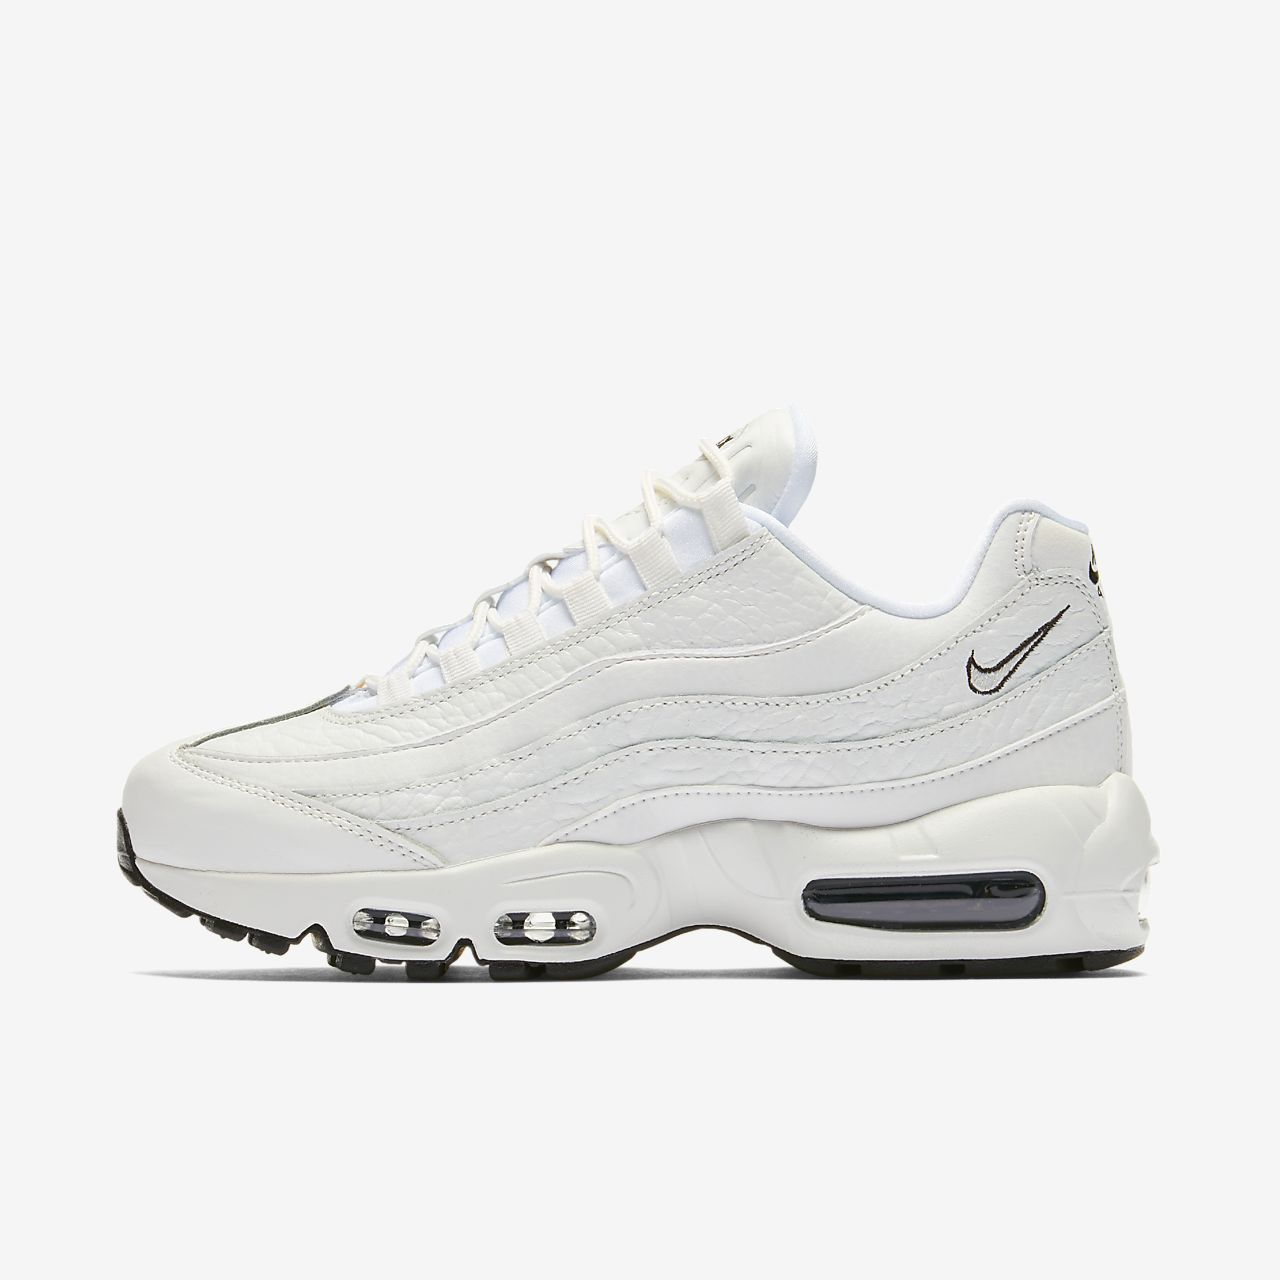 promo code 7e702 8ceed Womens Shoe. Nike Air Max 95